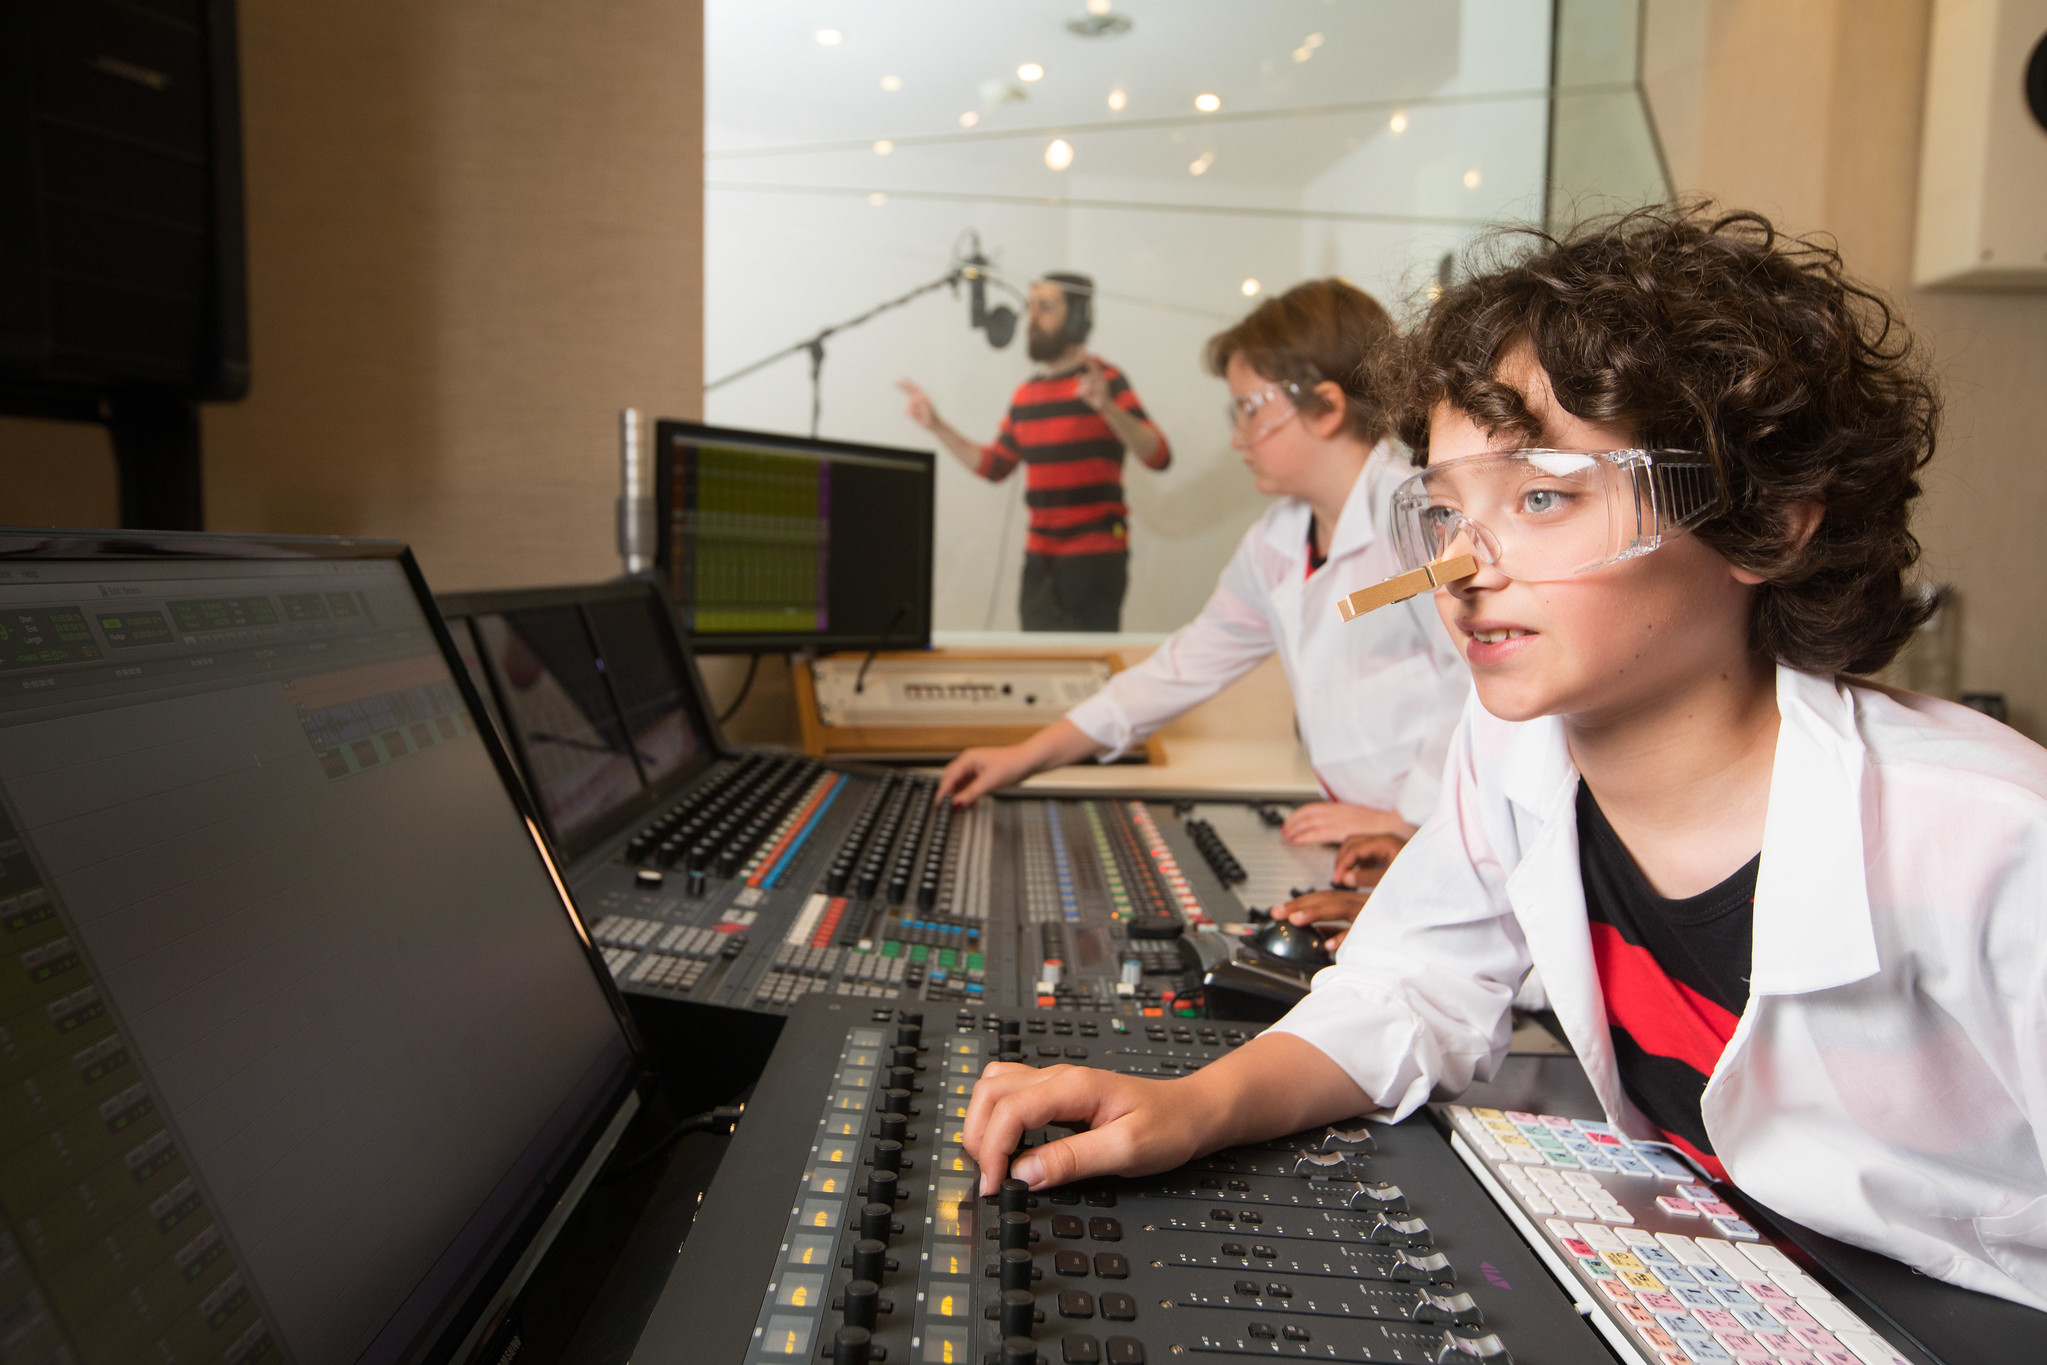 Young people in recording studio